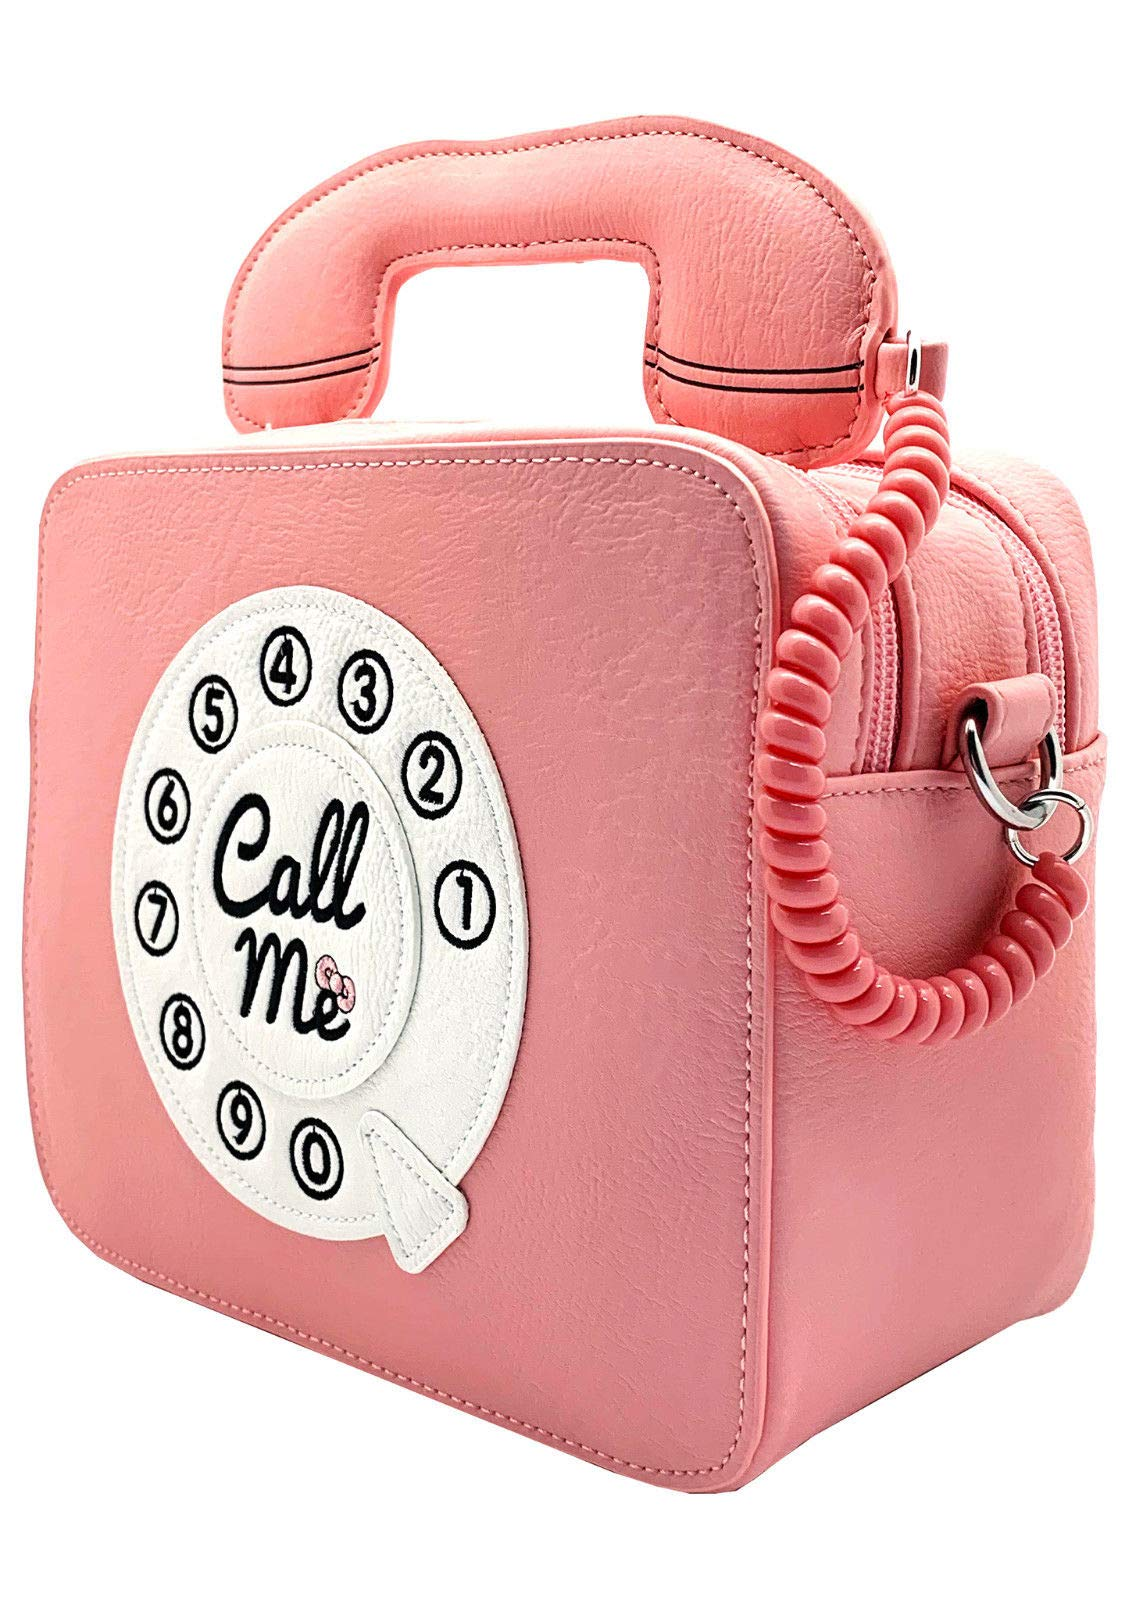 Loungefly x Sanrio Hello Kitty Telephone Call Me Crossbody Purse (One Size, Pink) by Loungefly (Image #2)